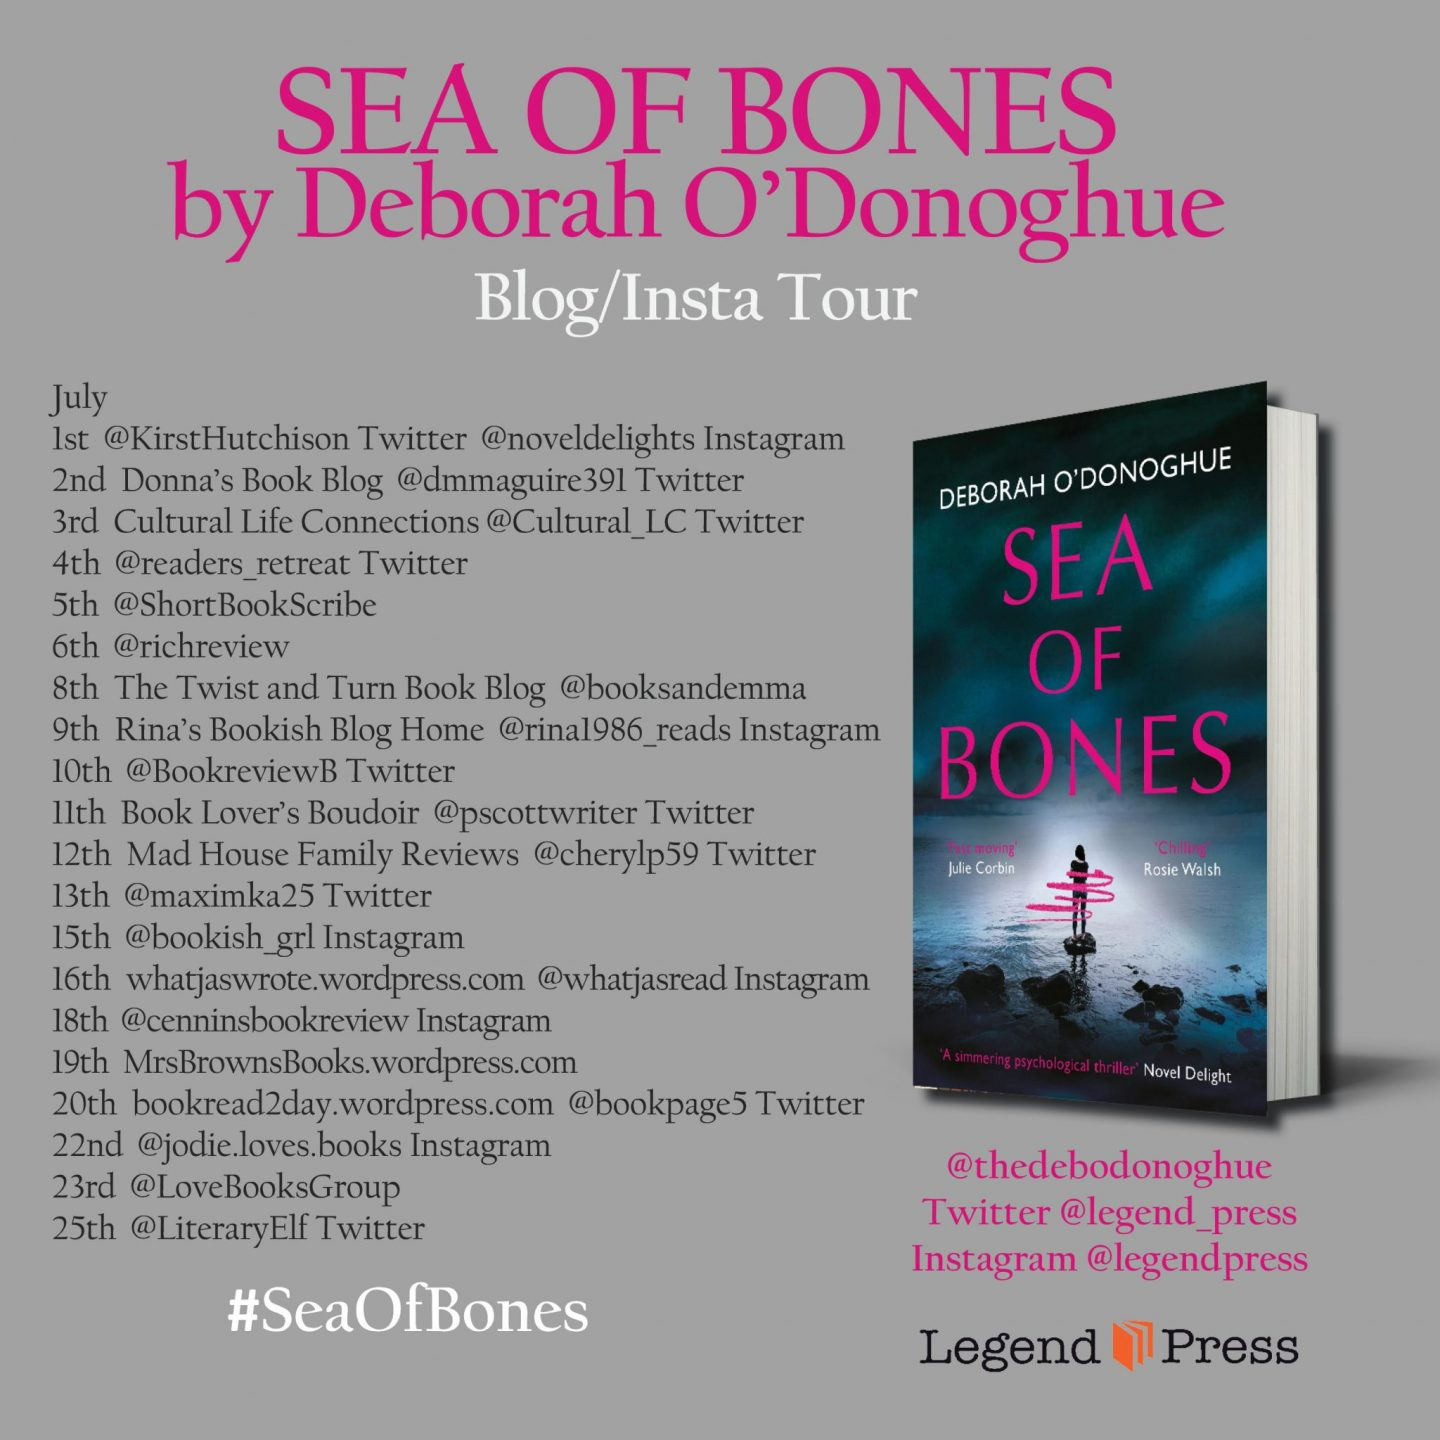 Sea of Bones blog tour poster